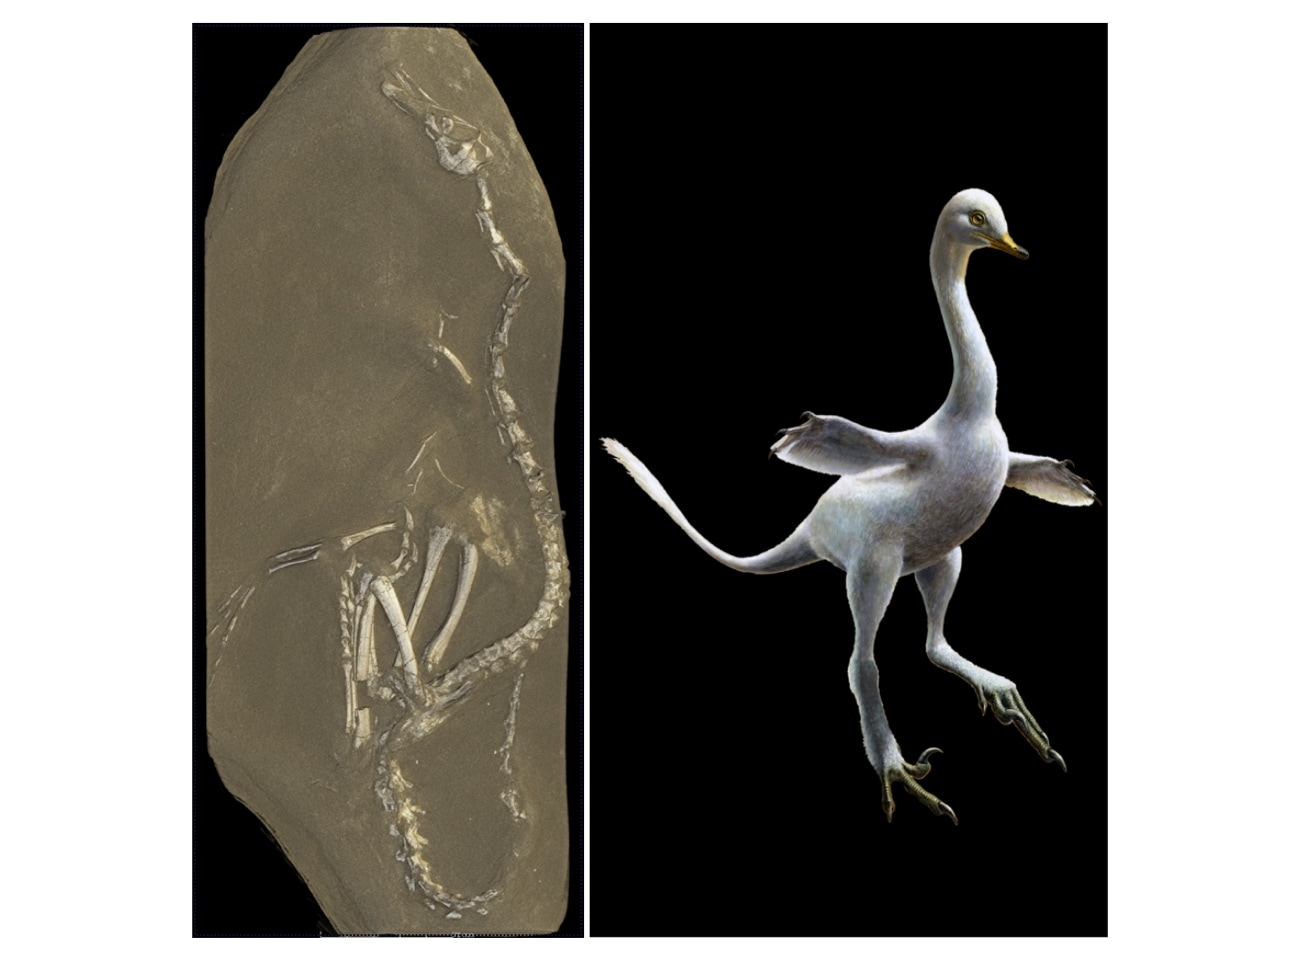 An image of the fossil beside an artist's rendition of what the creature might have looked like.